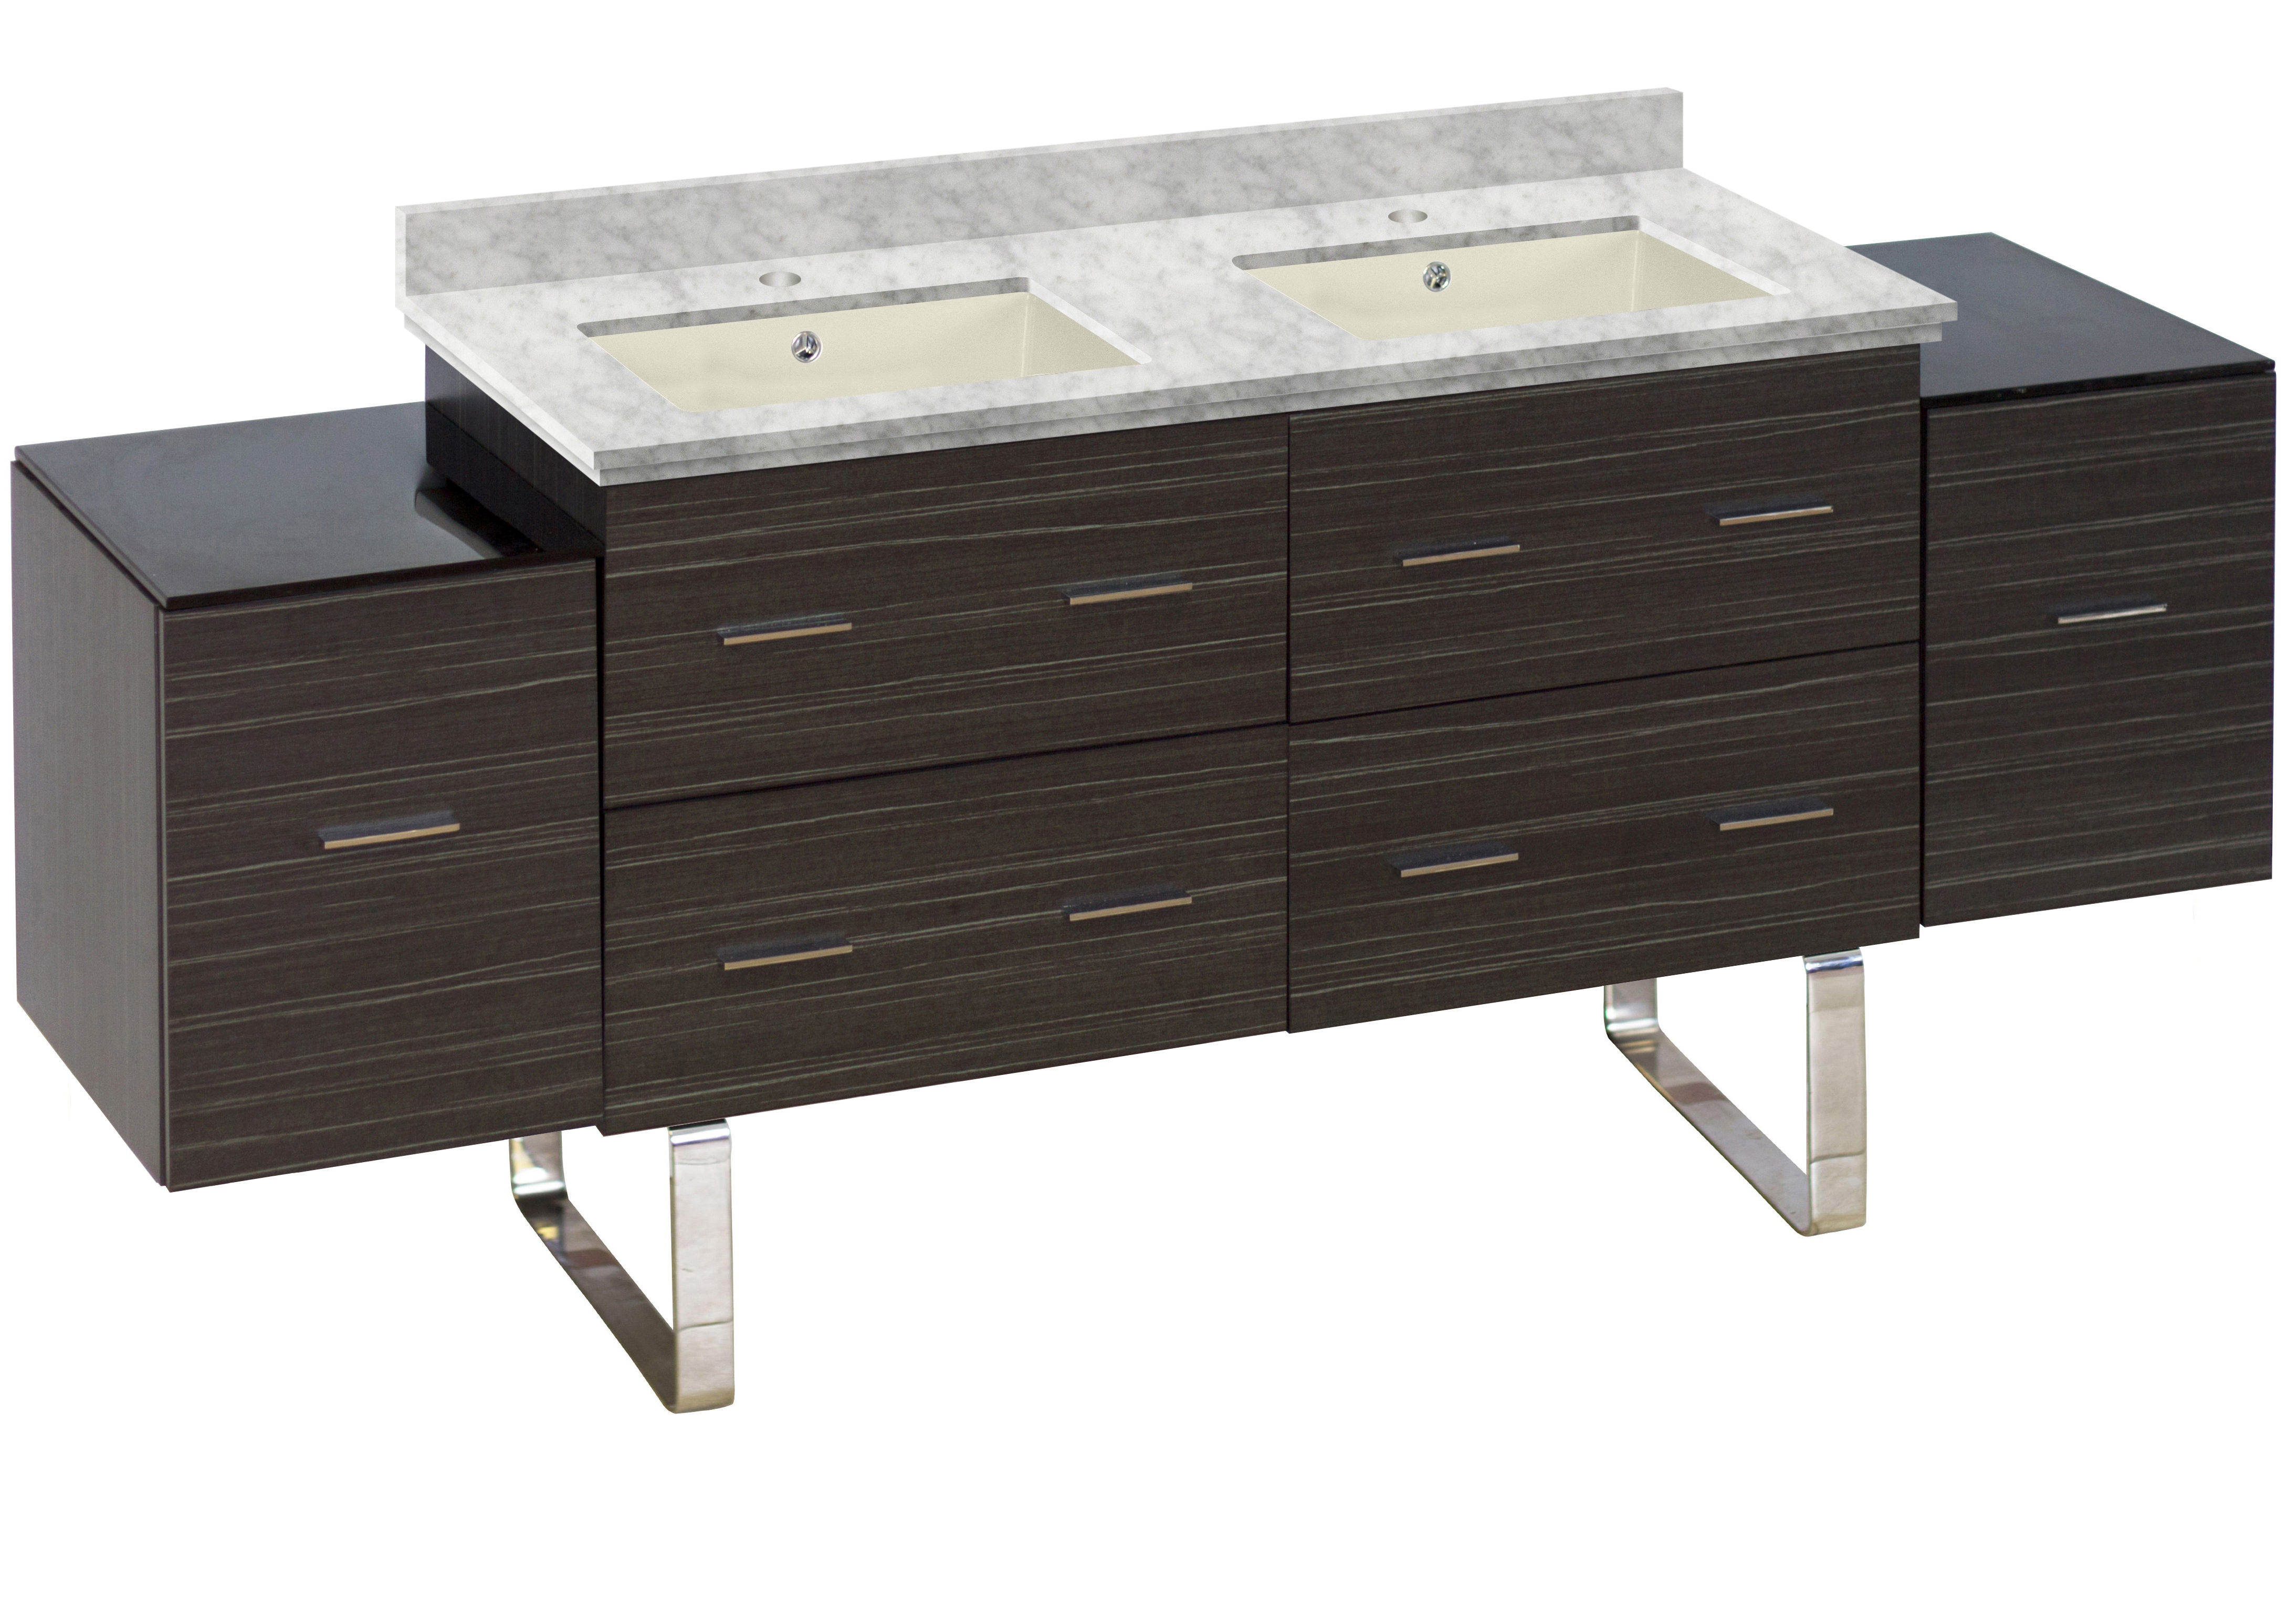 W Floor Mount Dawn Grey Vanity Set For 1 Hole Drilling Bianca Carara Top  Biscuit UM Sink #PH 19033